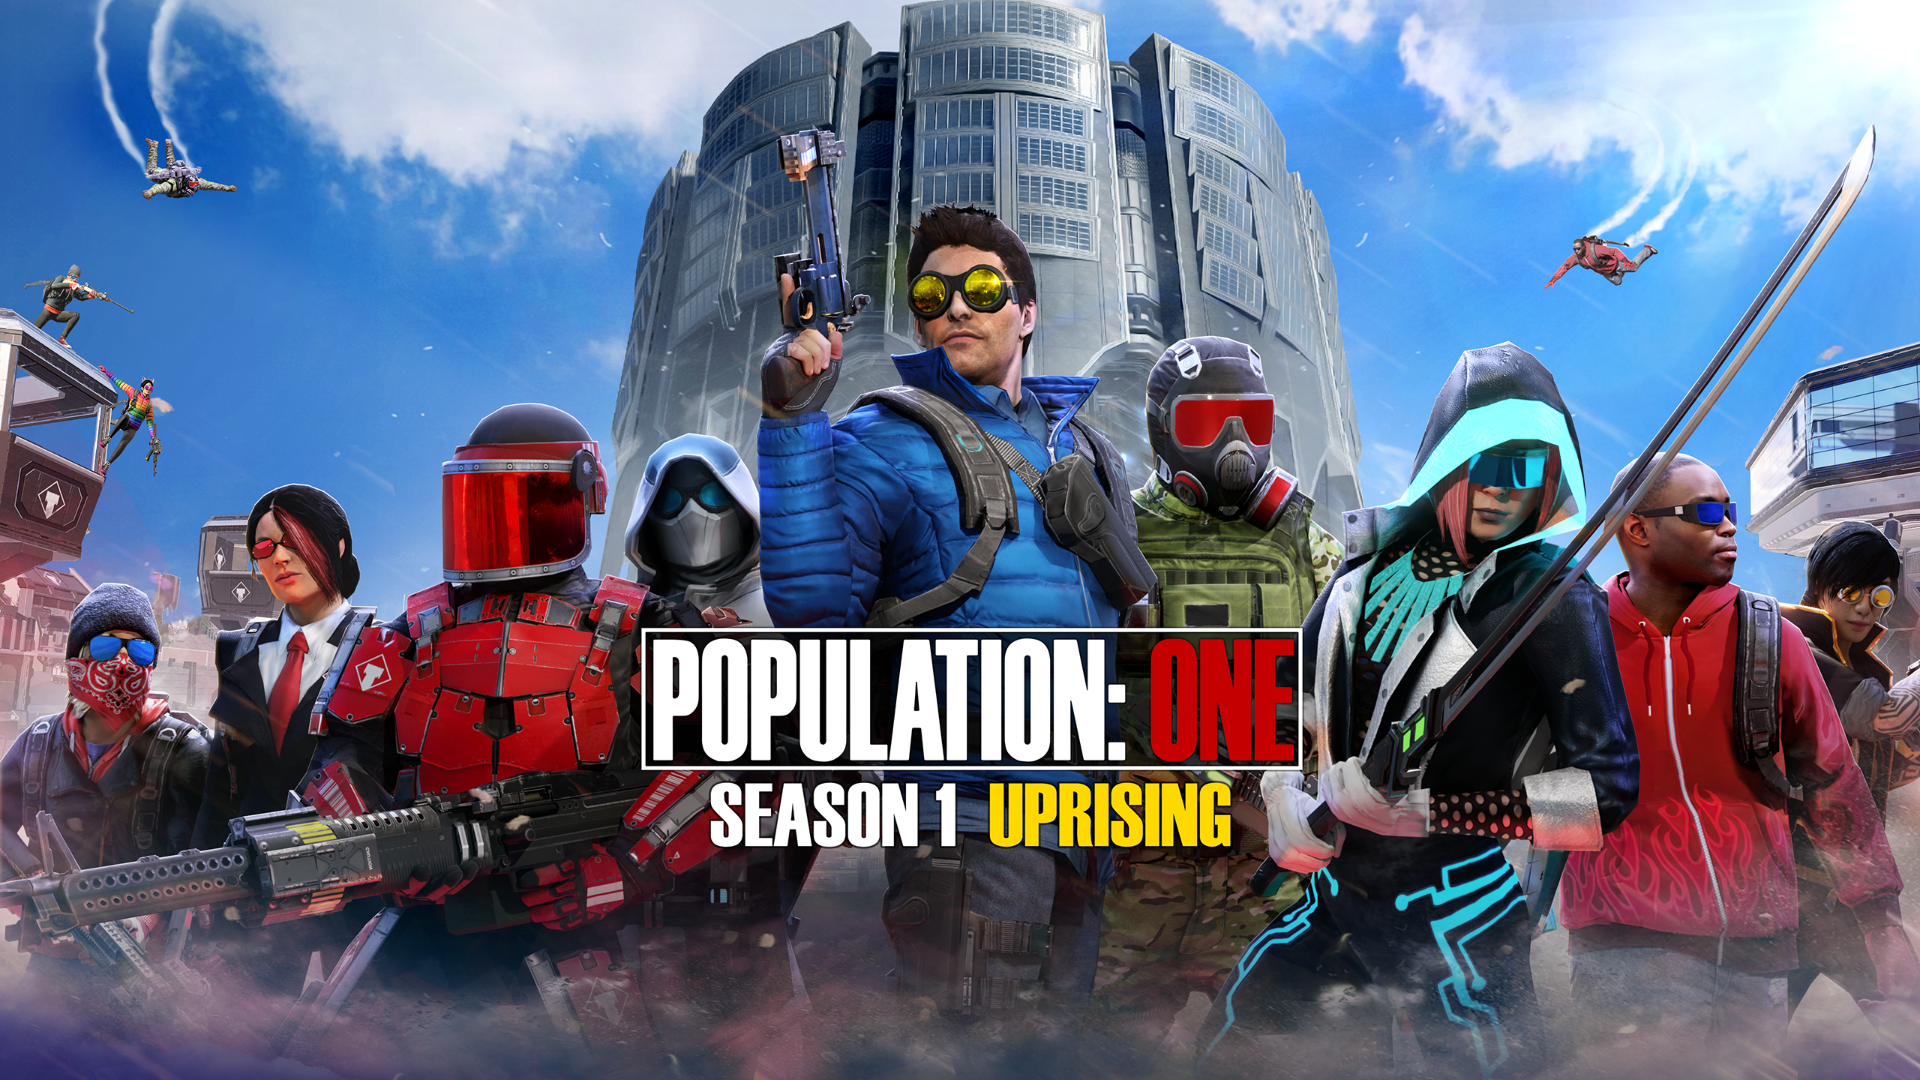 BigBox VR's Season One: Uprising Brings Tons of New Content and Social Features to Population: One